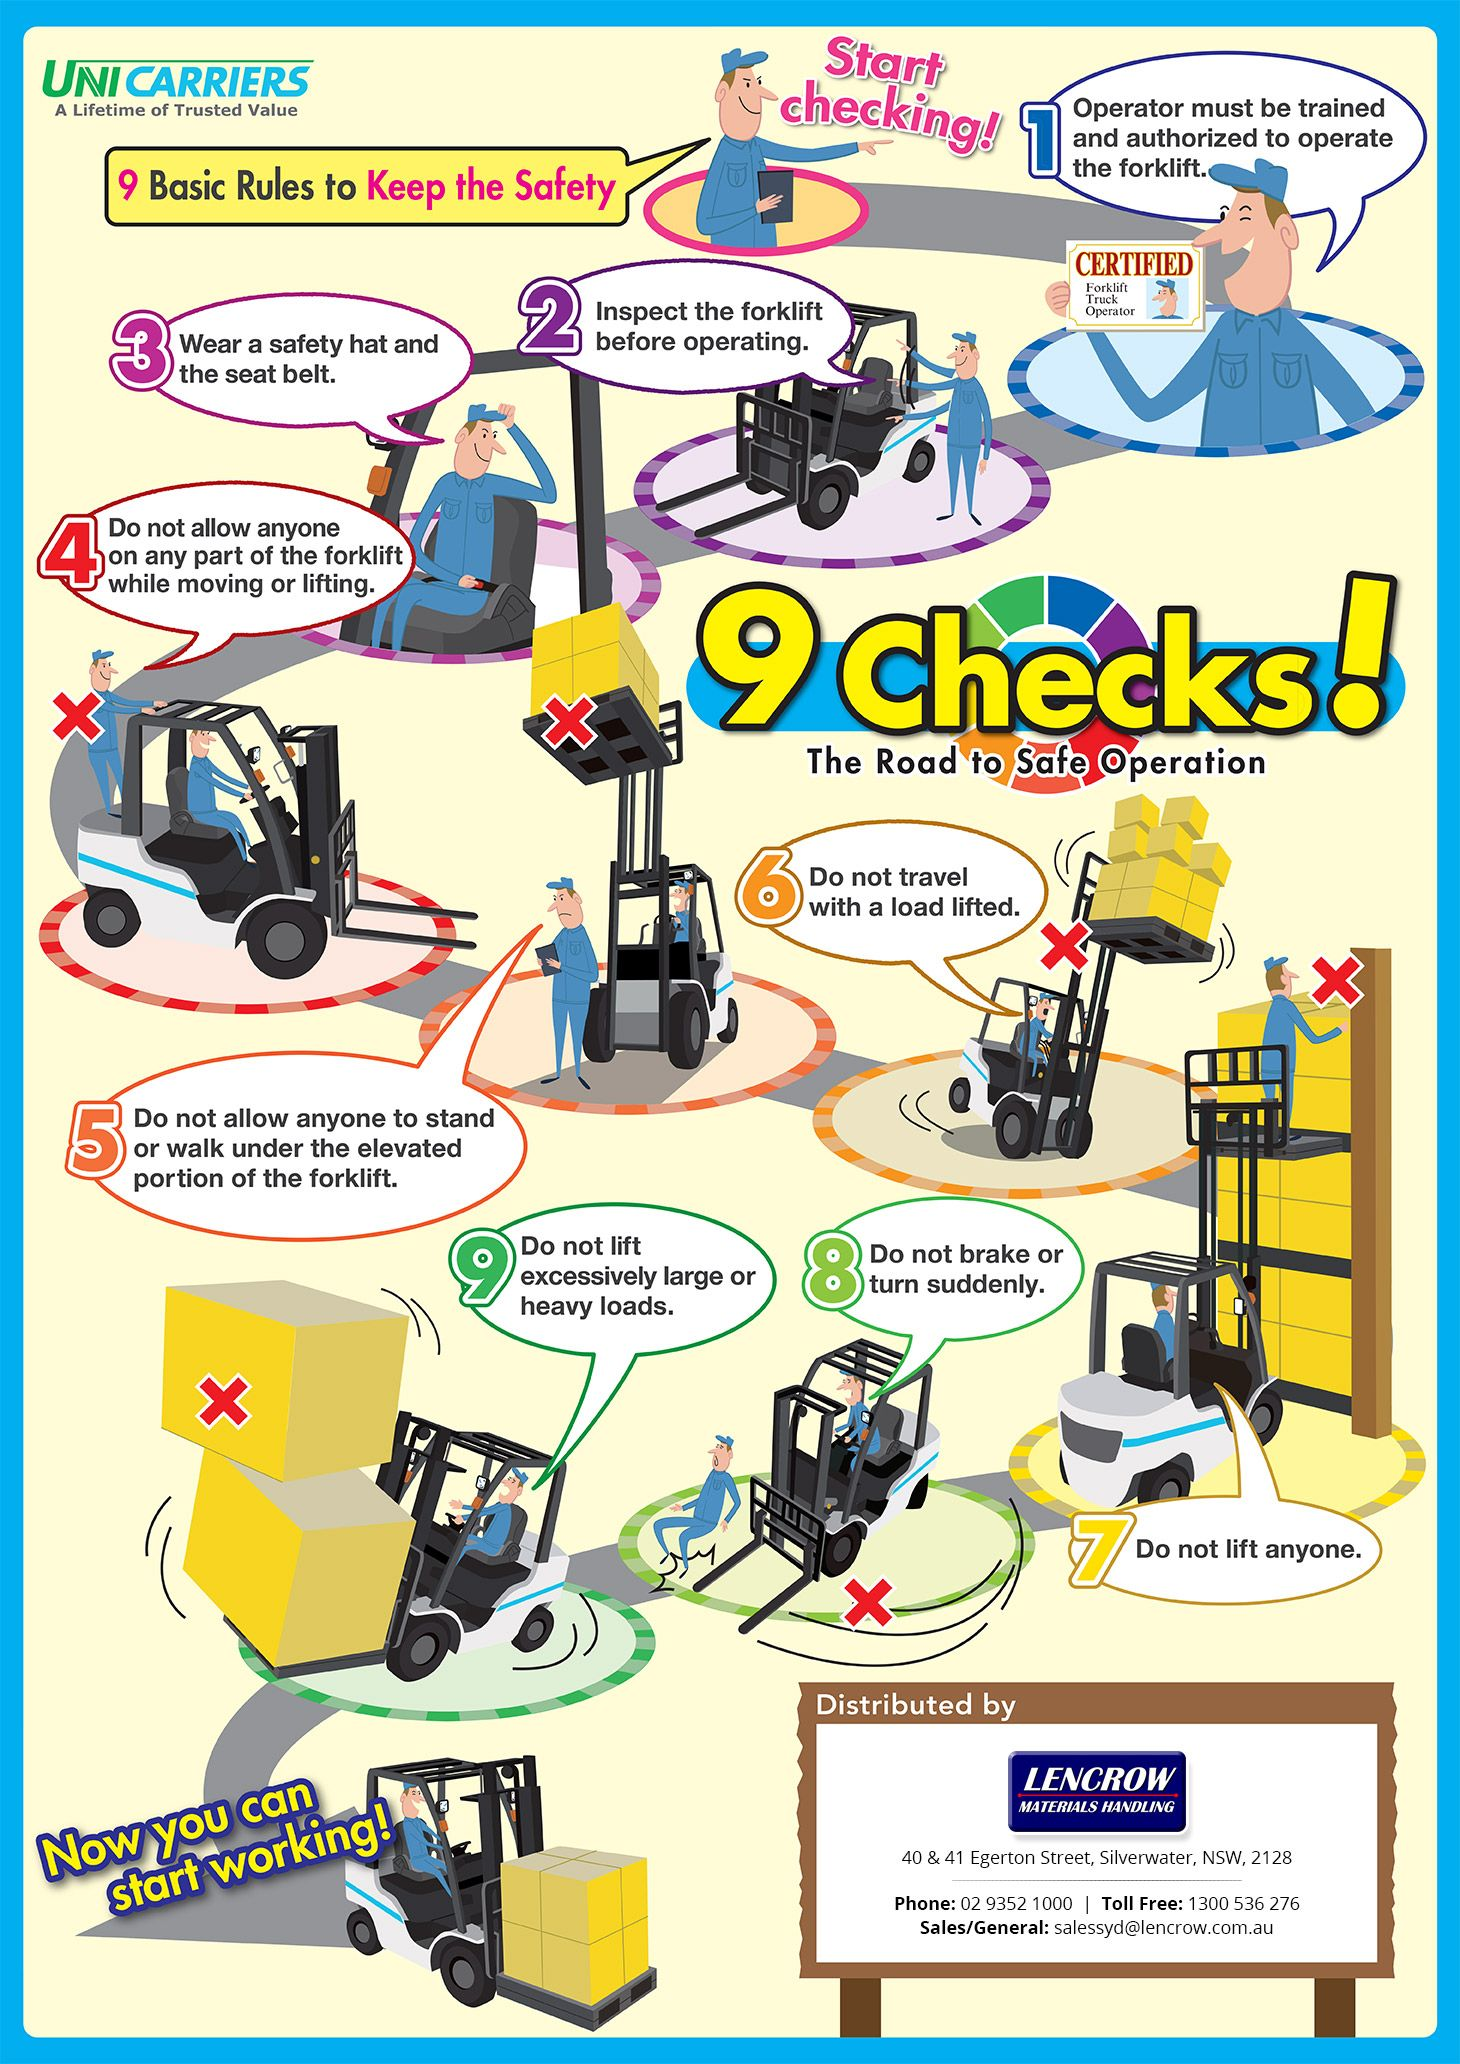 Forklift Safety Tips 9 Basic Rules To Keep The Safety Safety